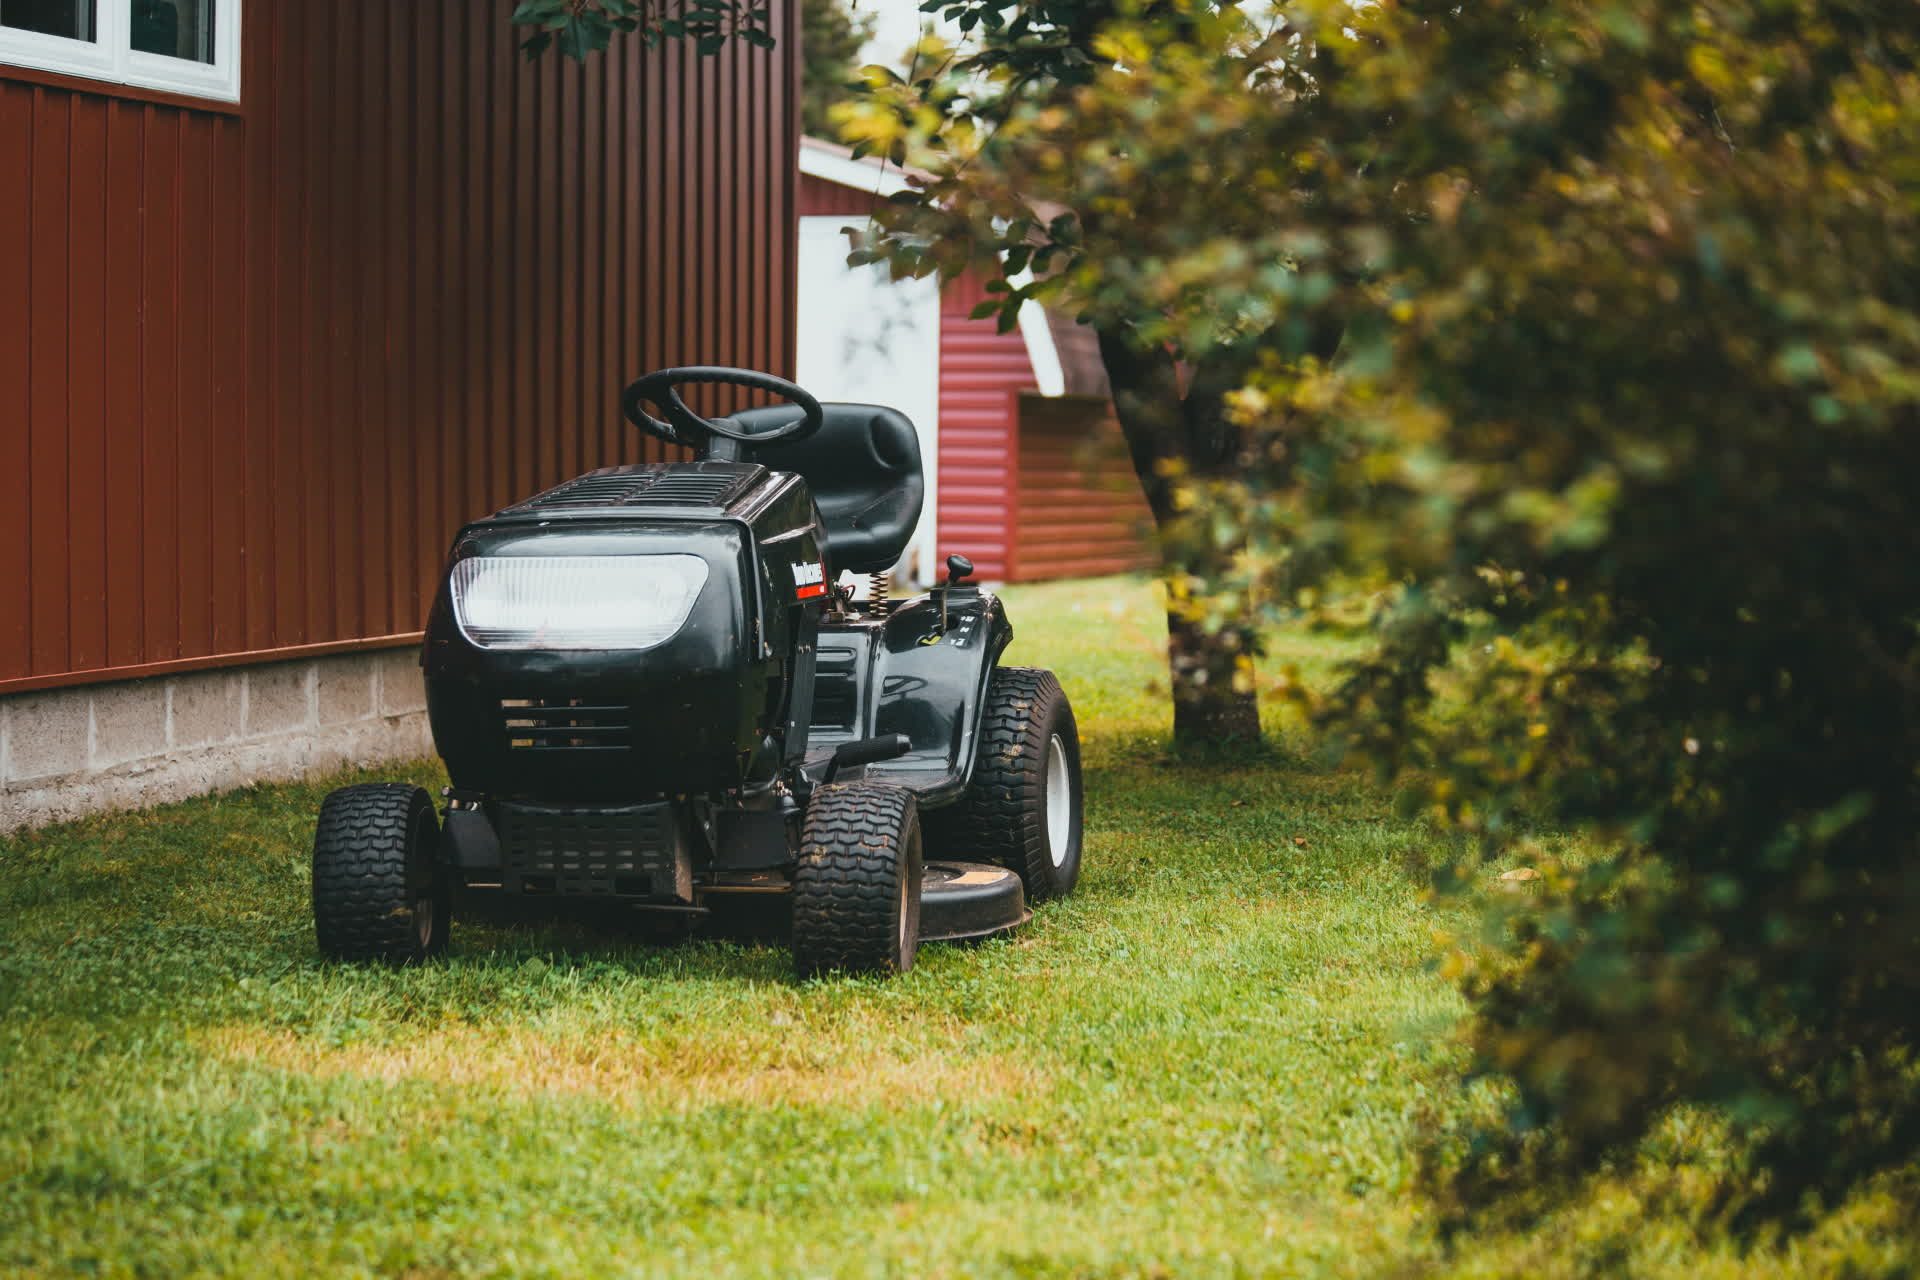 California bill may restrict the sale of gas-guzzling lawnmowers and generators in 2024